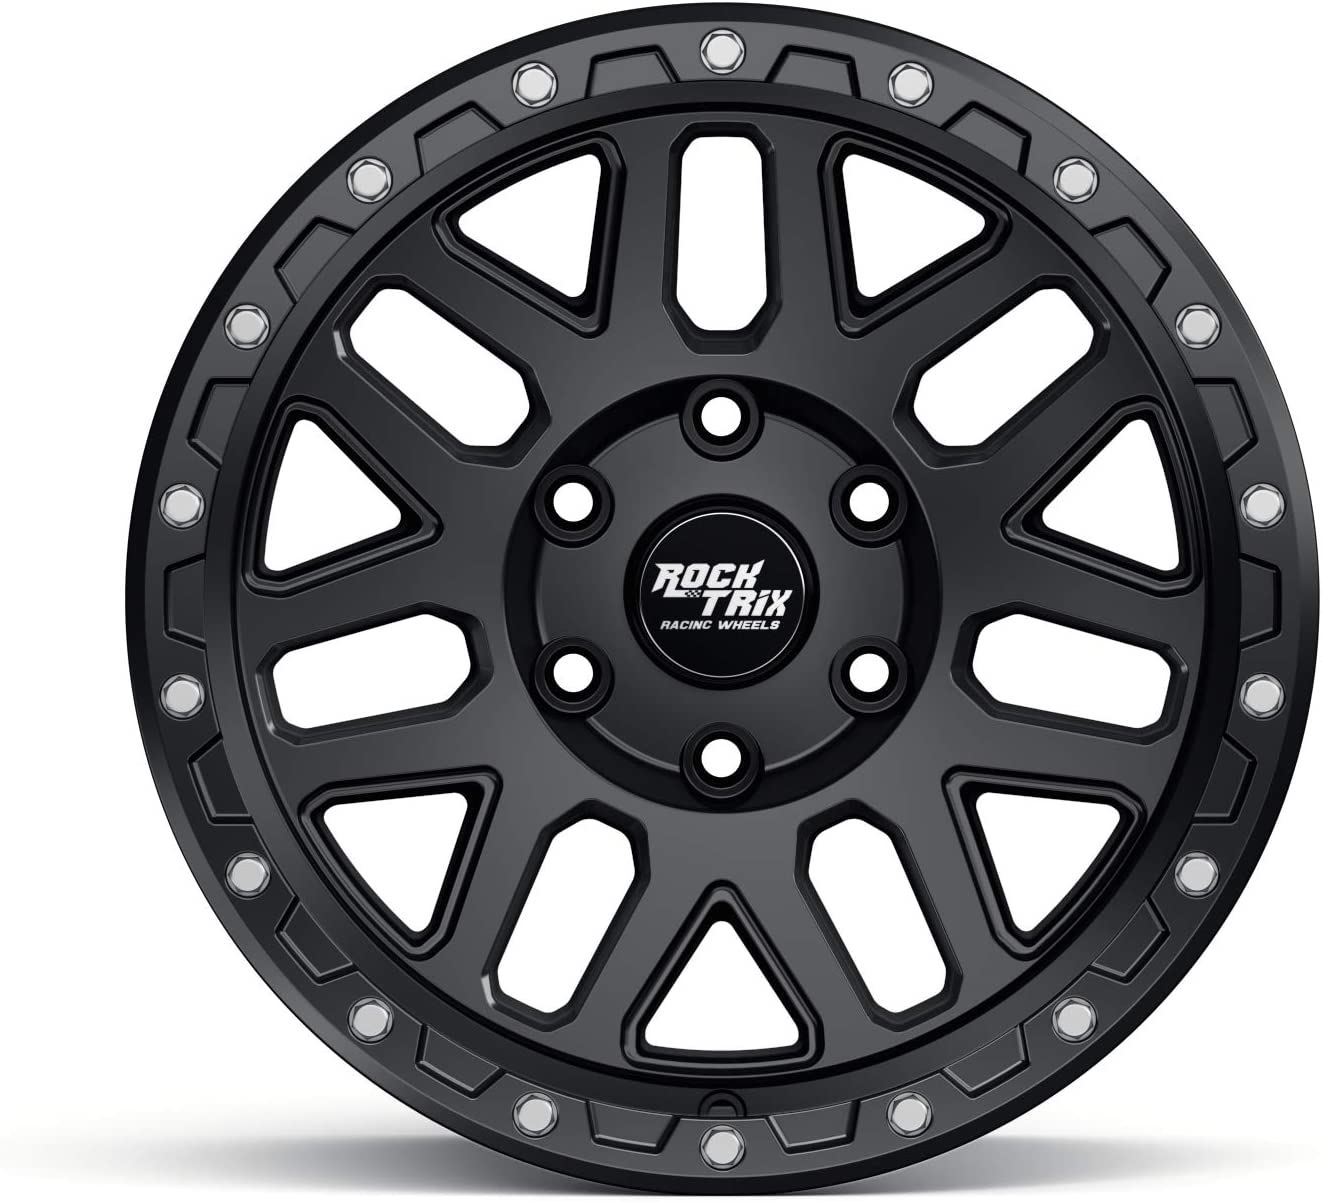 17x9 RockTrix RT110 17 inch Wheel Compatible with 2009-2020 Ford F150 1pc 6x135 Bolt Pattern Matte Black All trims including Raptor -12mm Offset 87.1mm Bore